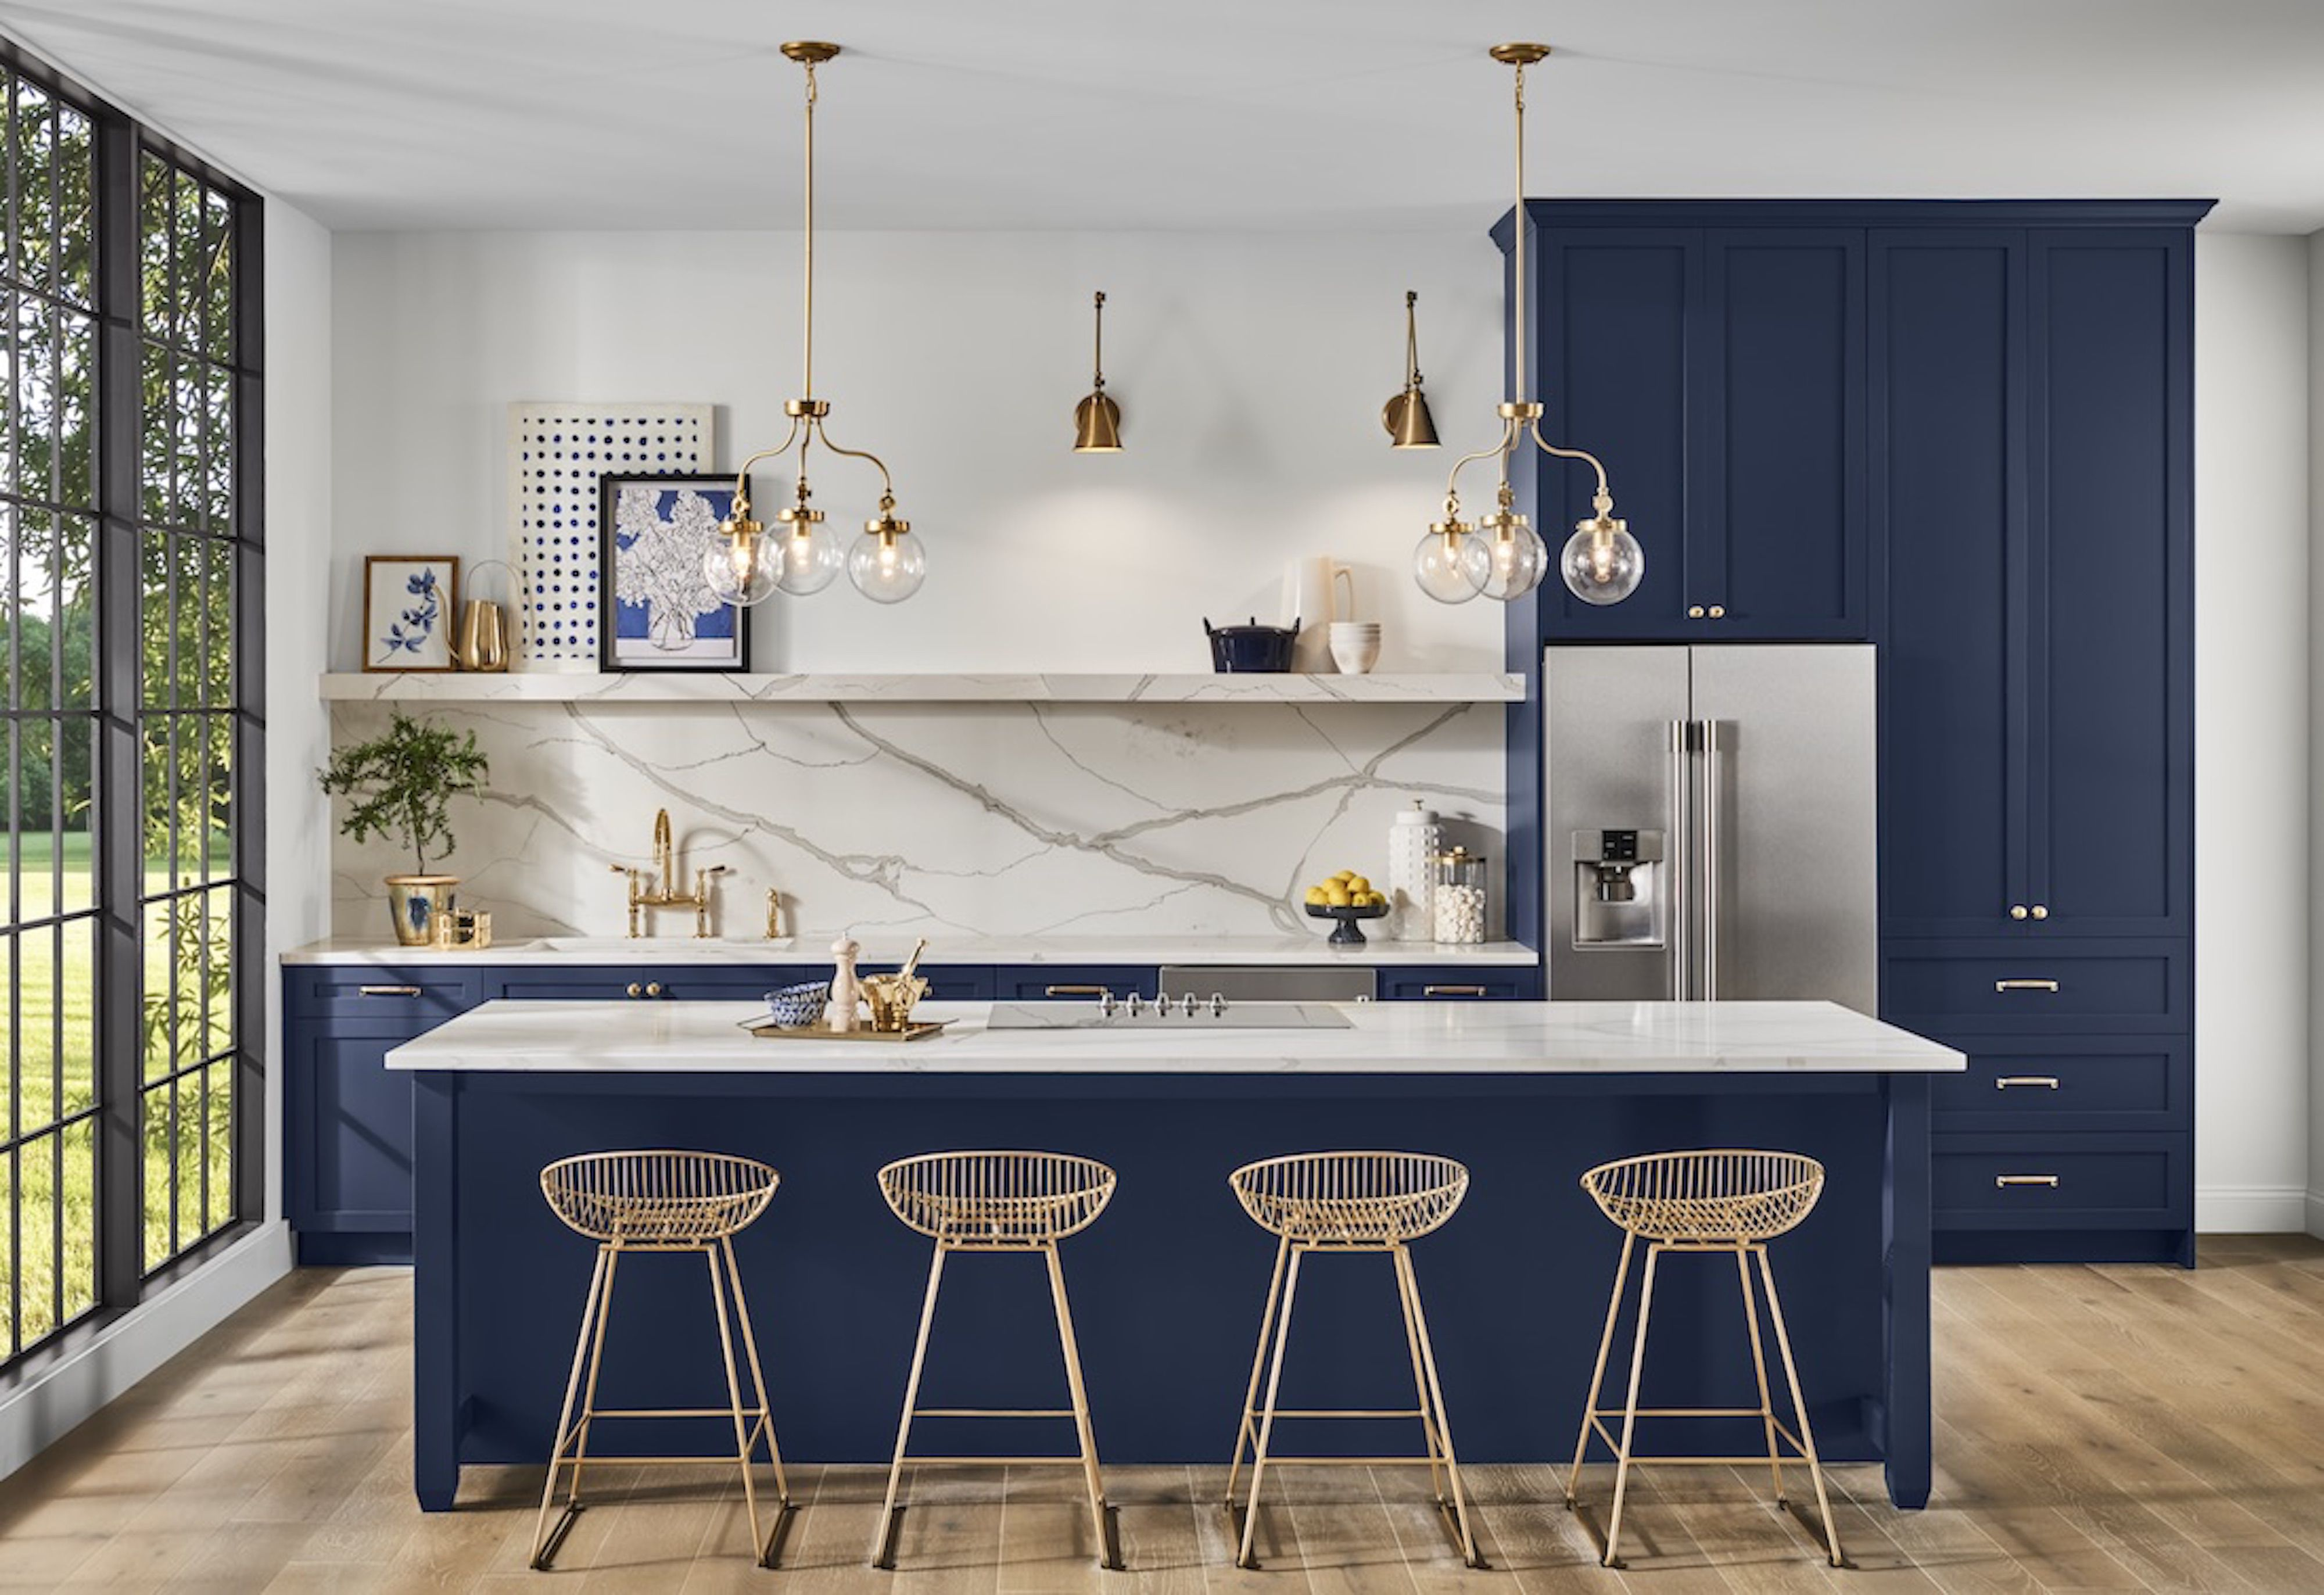 Instagram's Dreamiest Kitchens Might Inspire You to Remodel Your Own